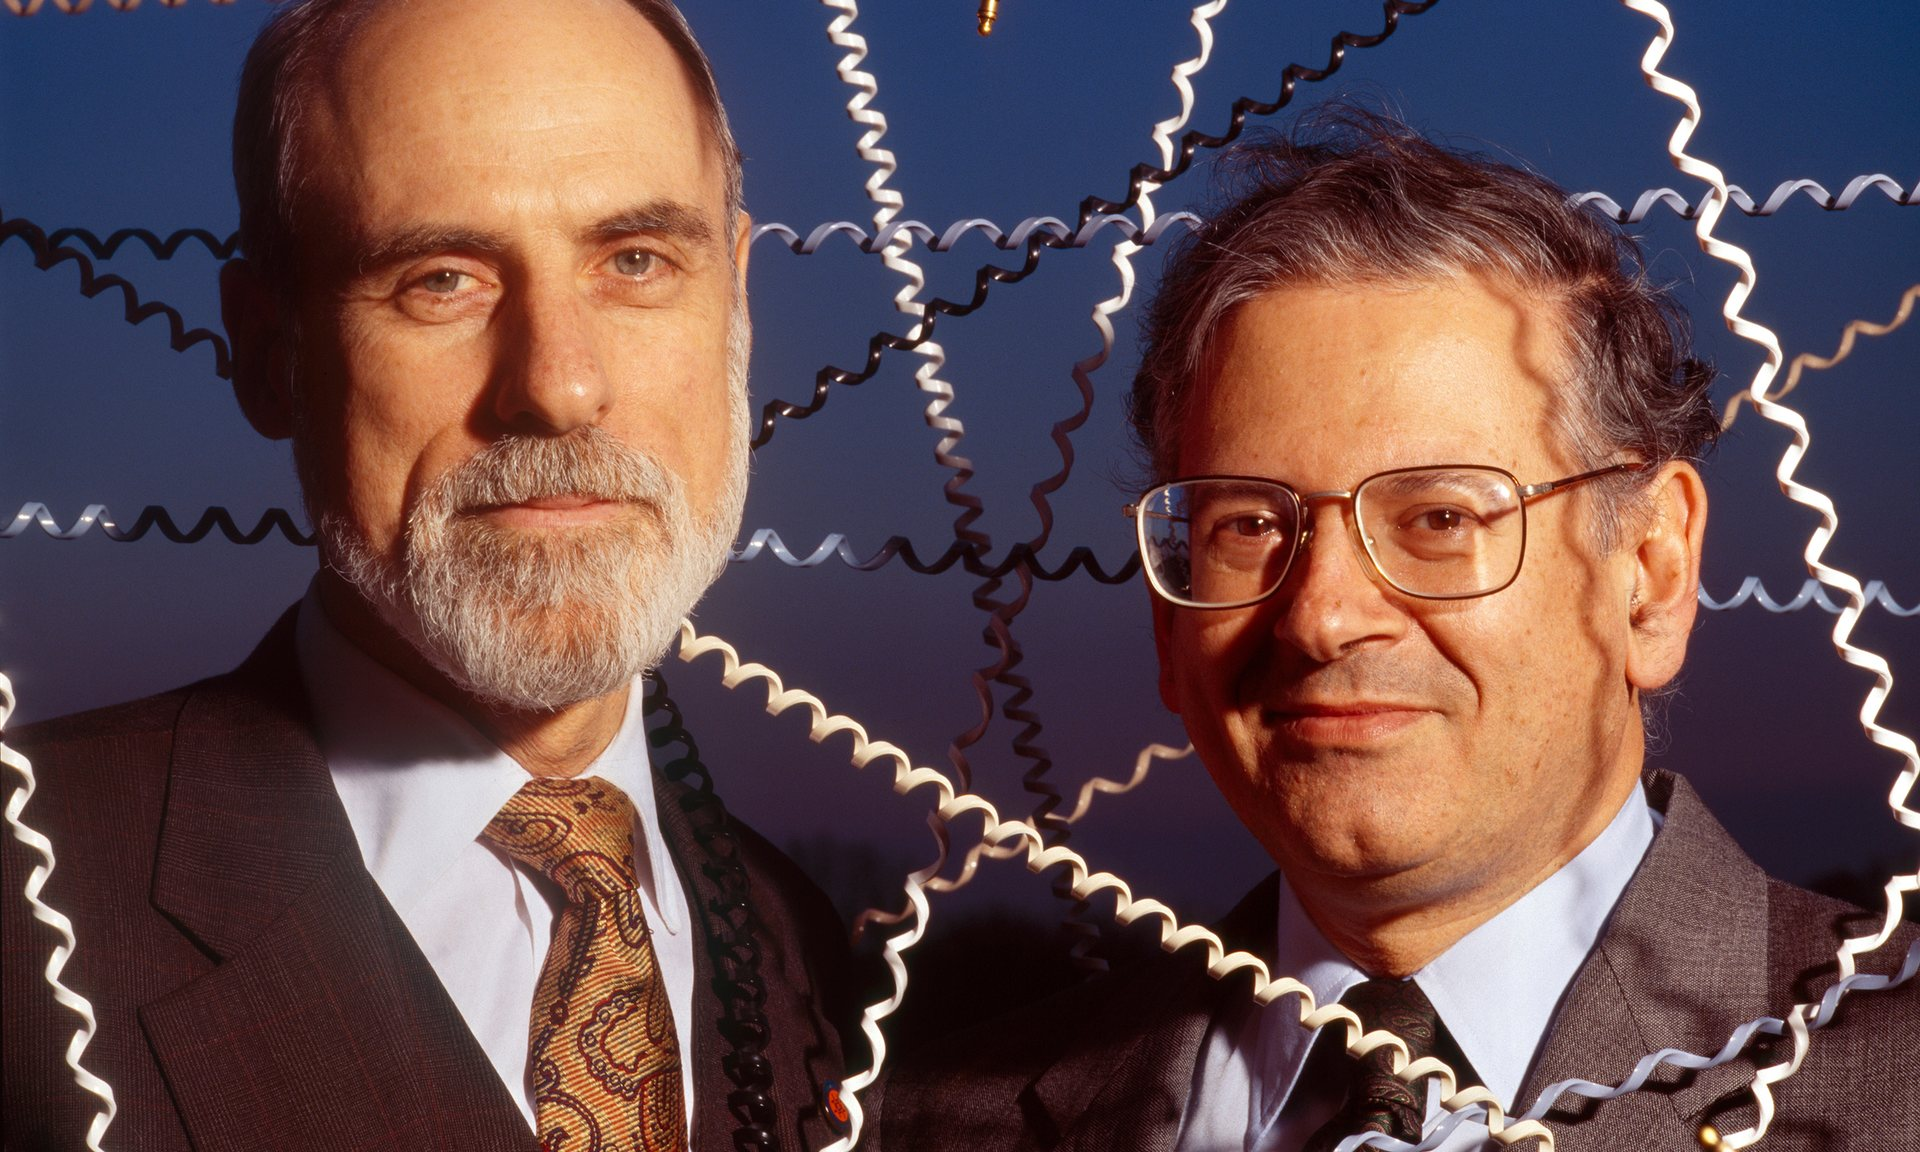 robert kahn and tcpip essay Widely known as one of the fathers of the internet, cerf is the co-designer of the tcp/ip protocols and the architecture of the internet with his colleague, robert kahn, cerf received the us national medal of technology in 1997 for co-founding and developing the internet.